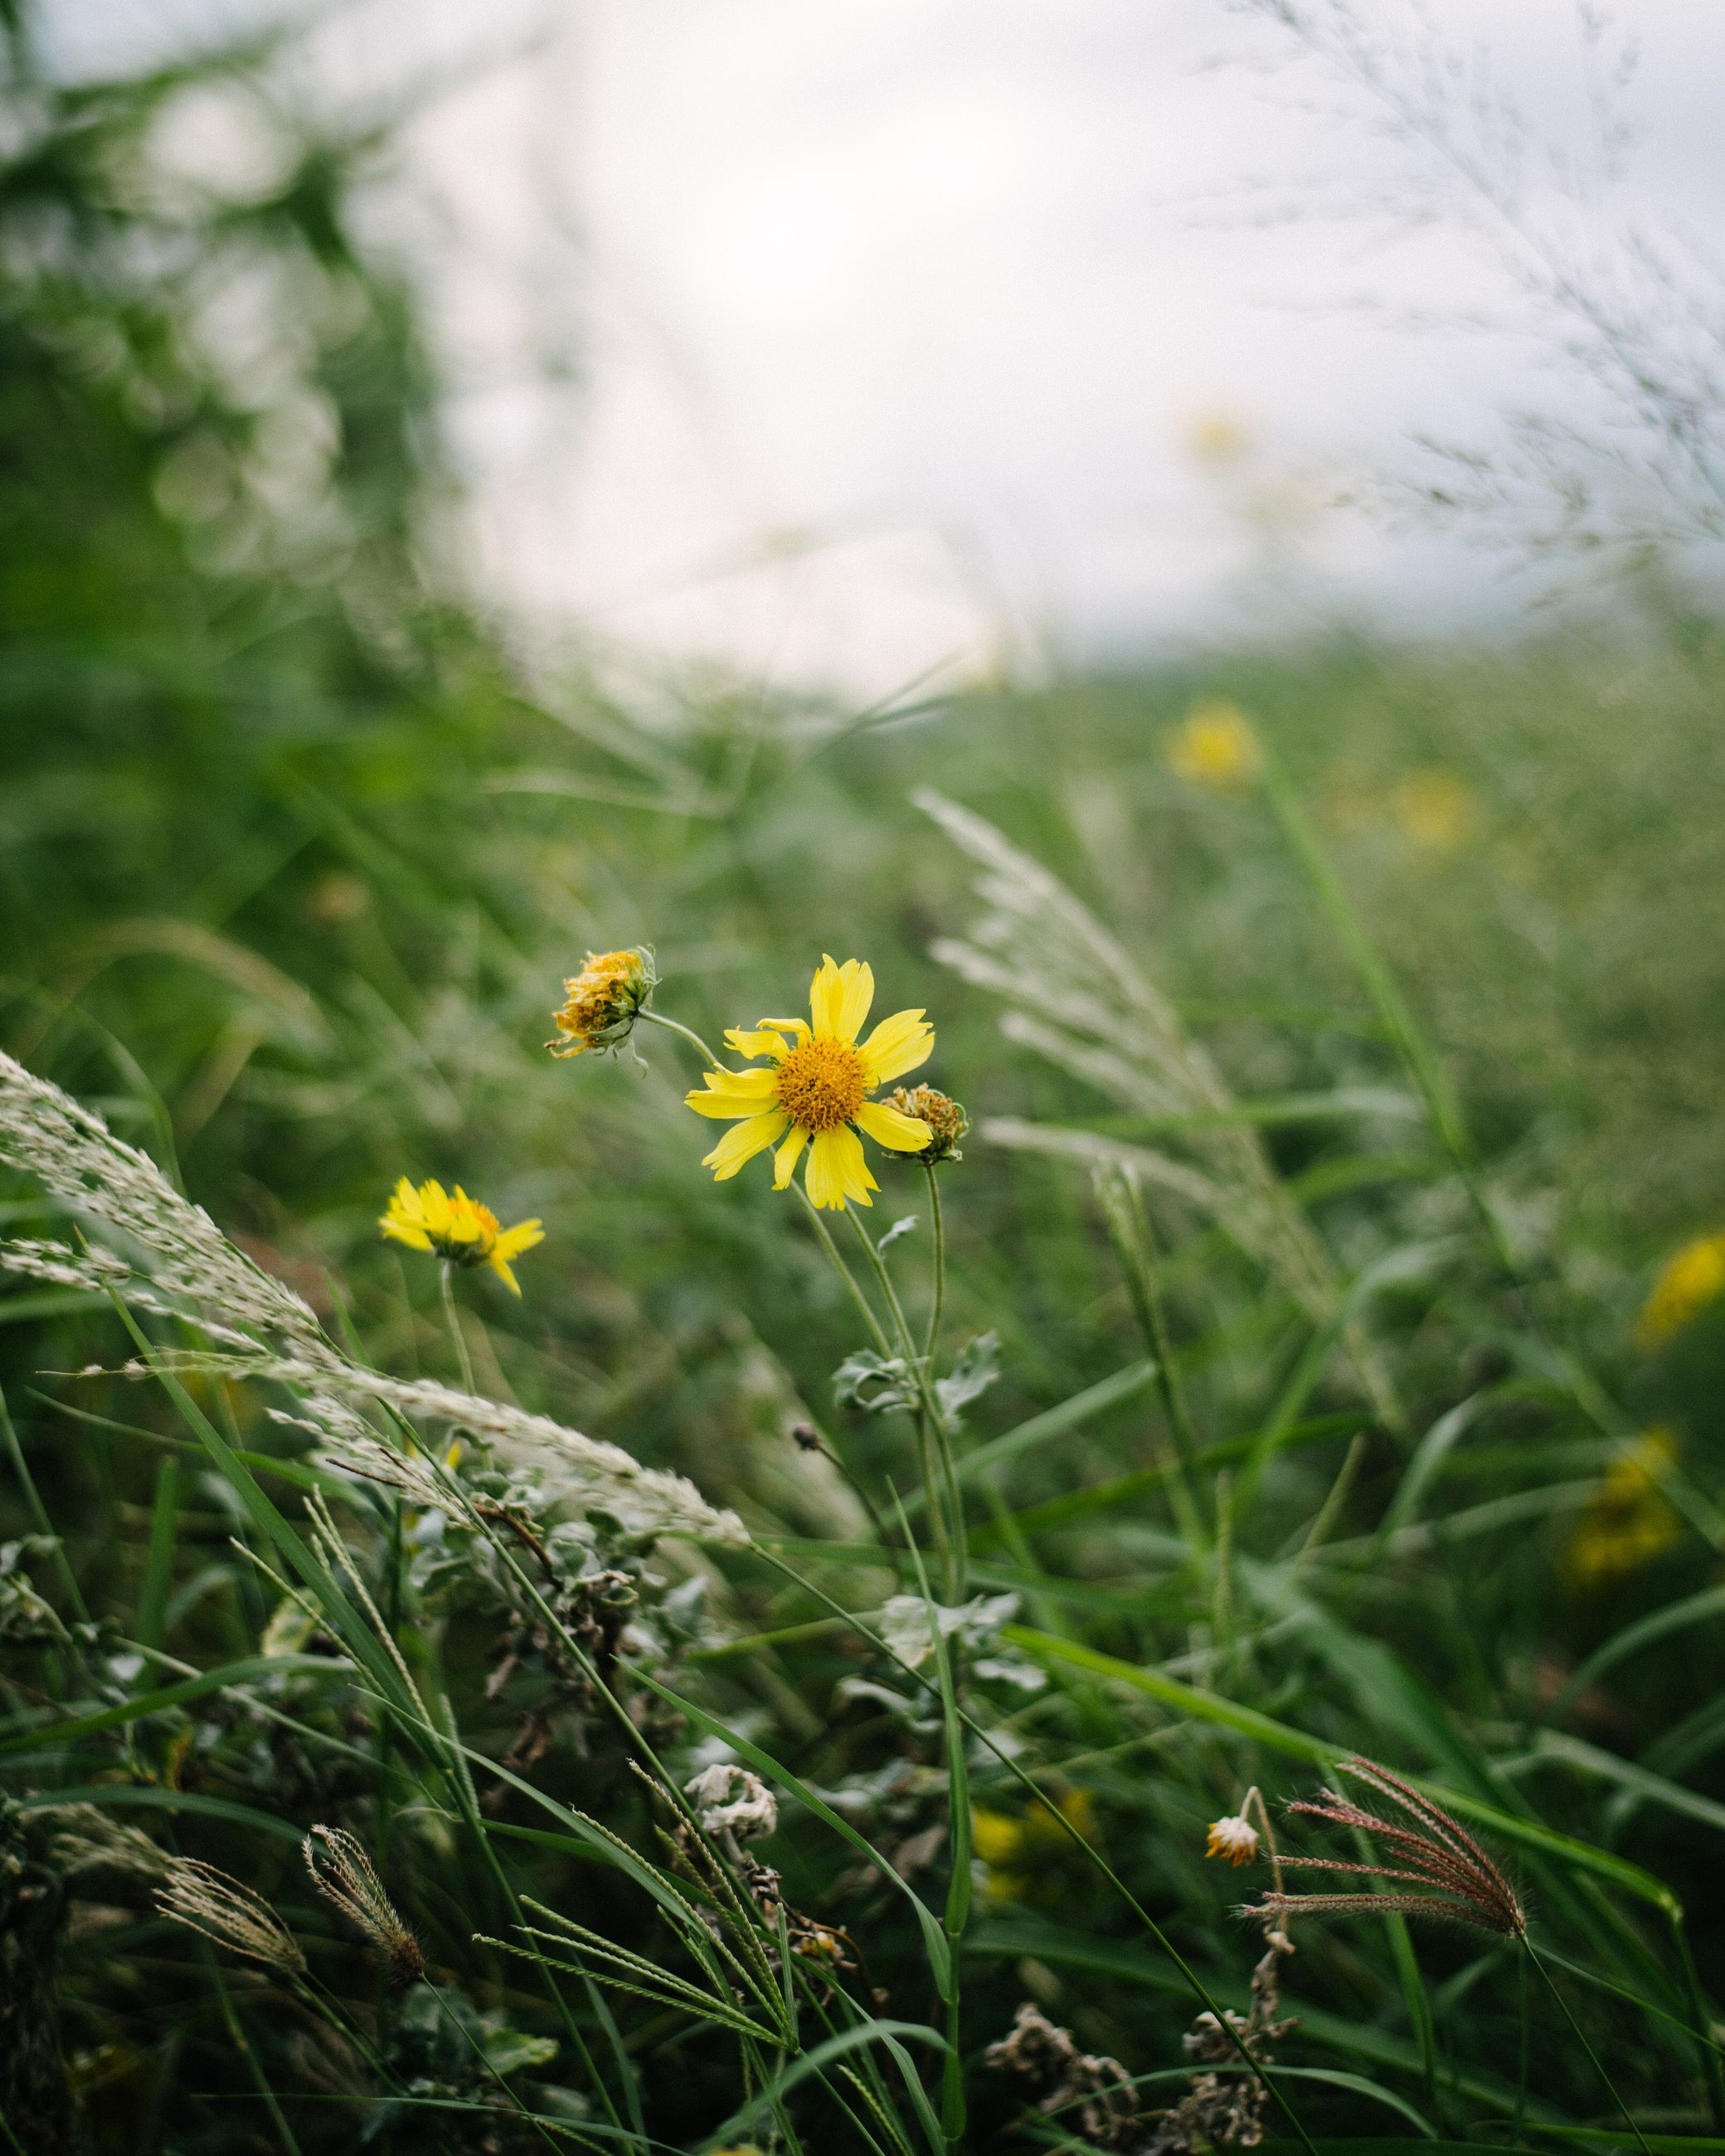 flower, freshness, fragility, yellow, growth, petal, flower head, beauty in nature, focus on foreground, blooming, field, plant, nature, close-up, stem, in bloom, wildflower, selective focus, daisy, single flower